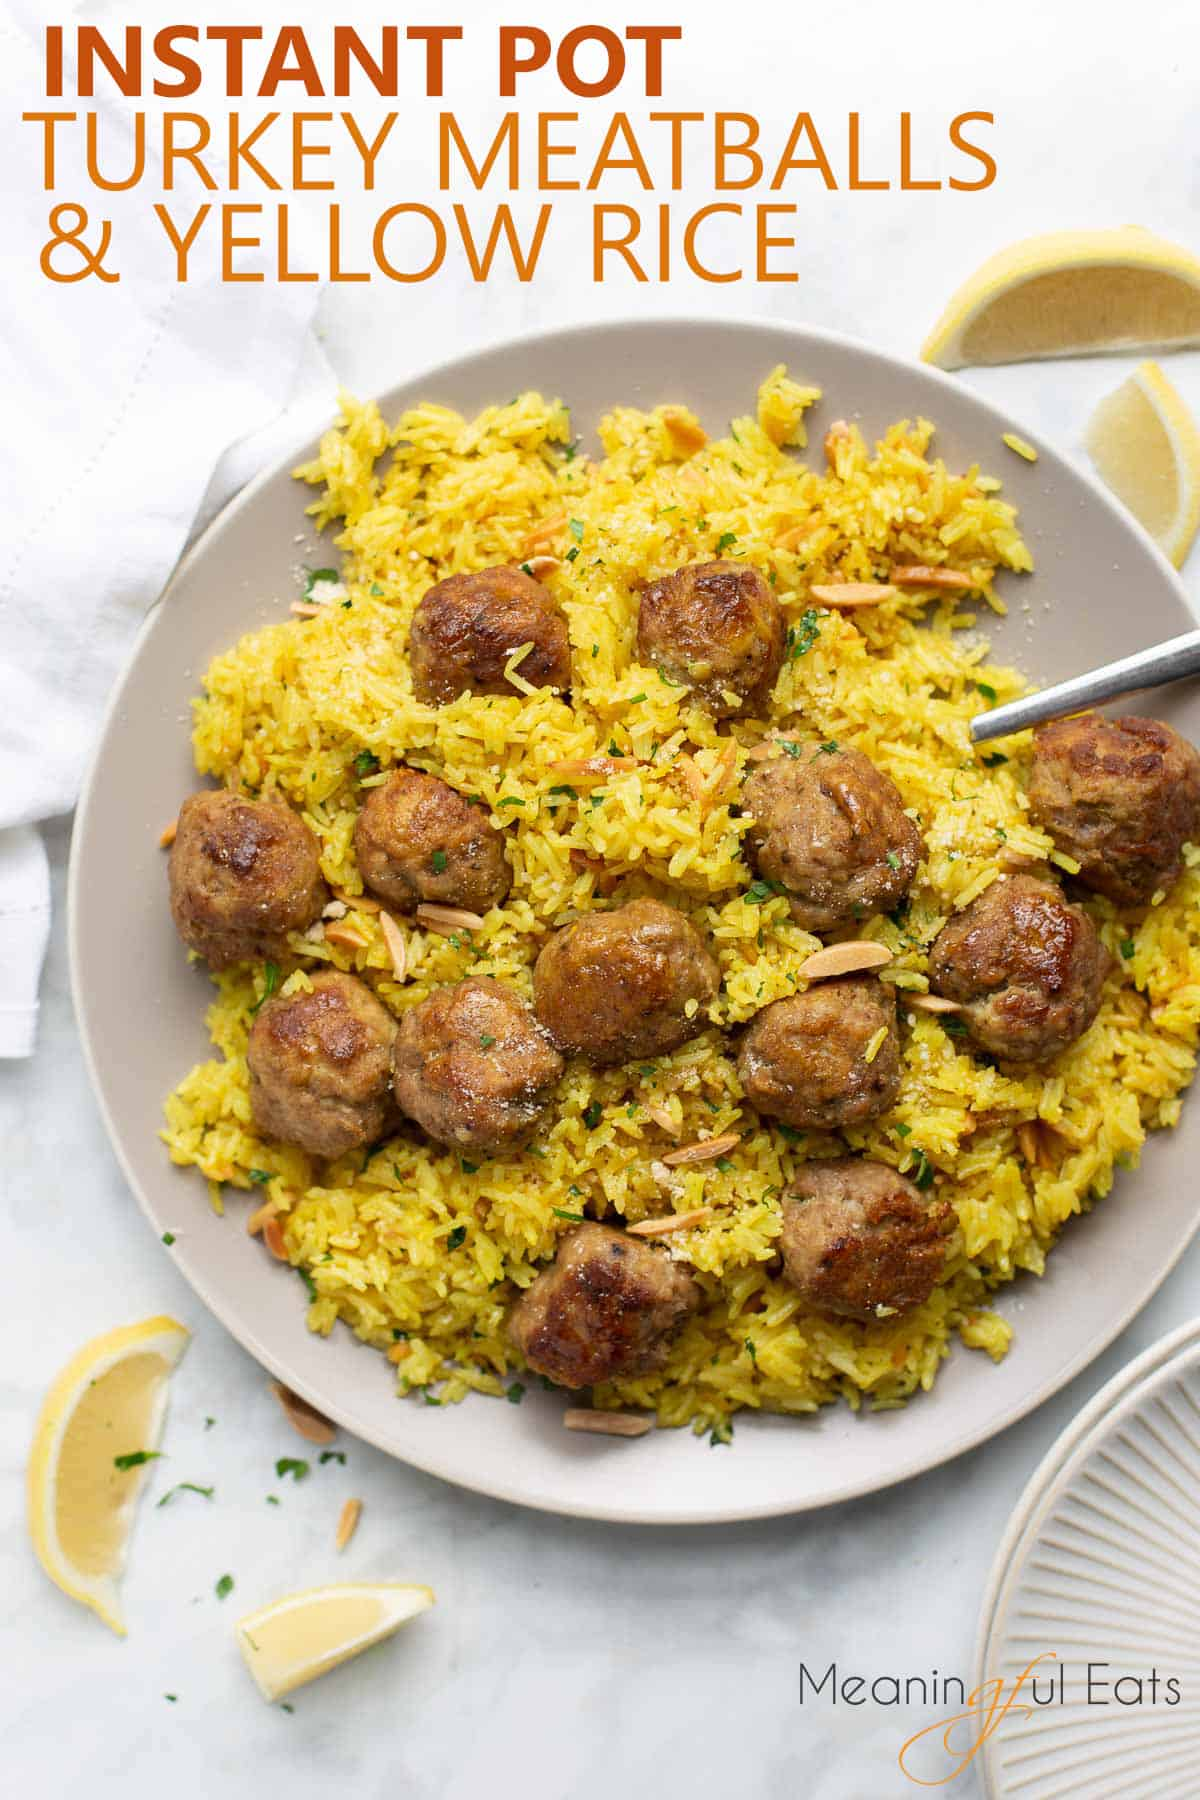 image for pinterest of meatballs and rice on gray plate with marble background